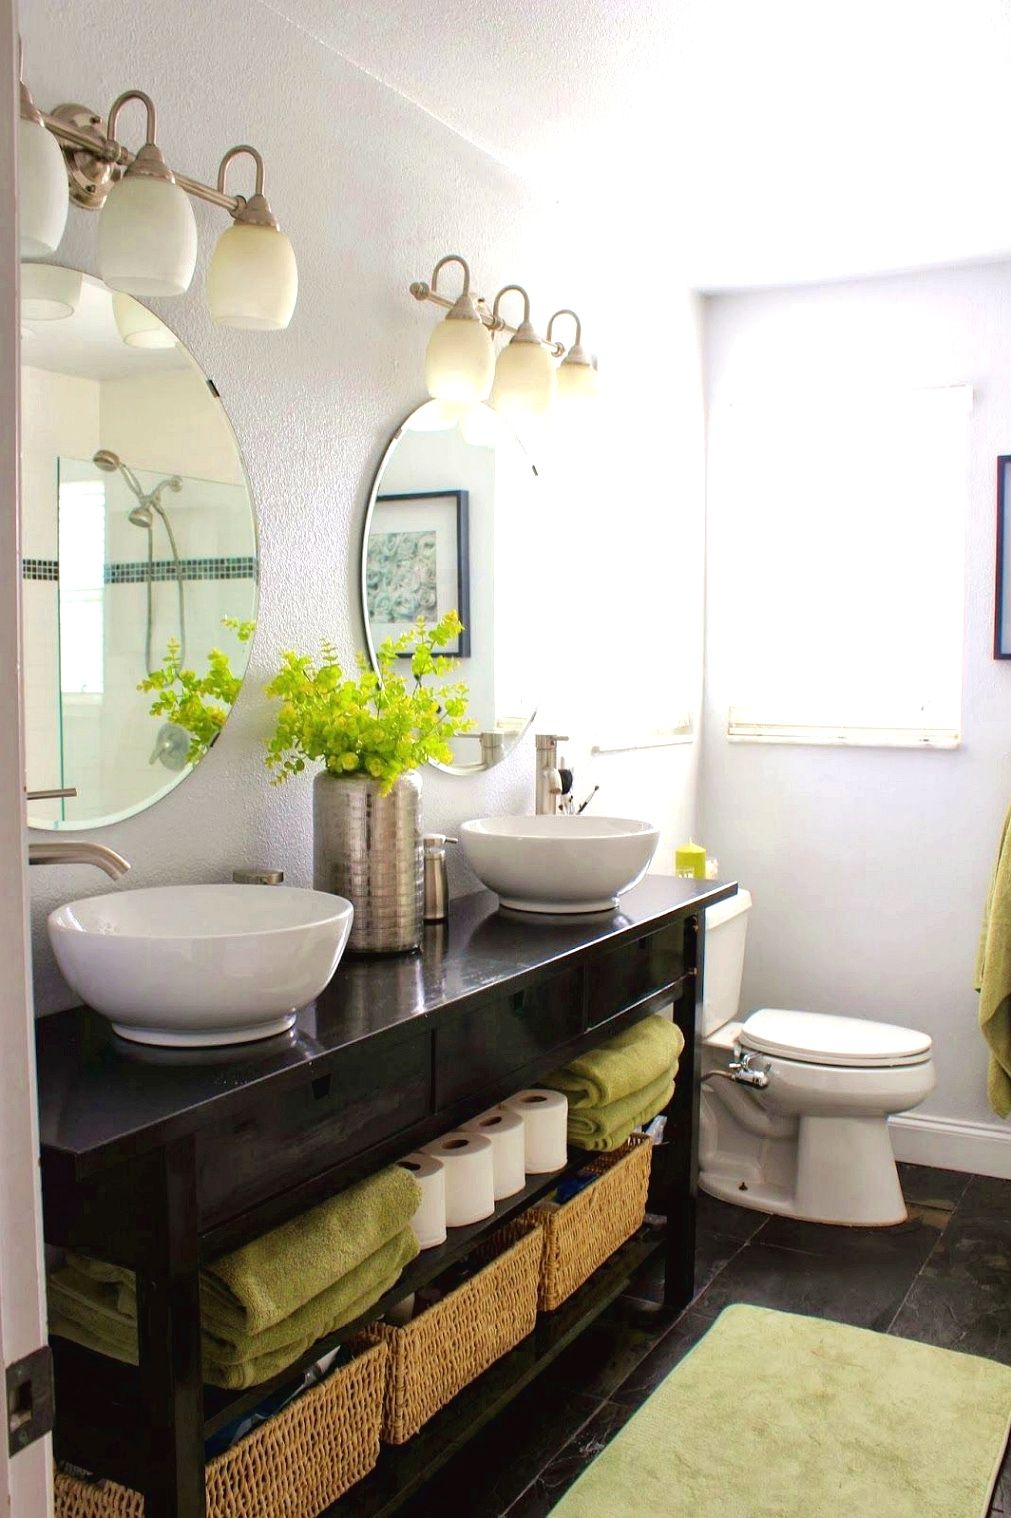 Bathroom Decorating Tips Decor By Daisy Small Bathroom Vanities Rustic Bathroom Vanities Bathrooms Remodel